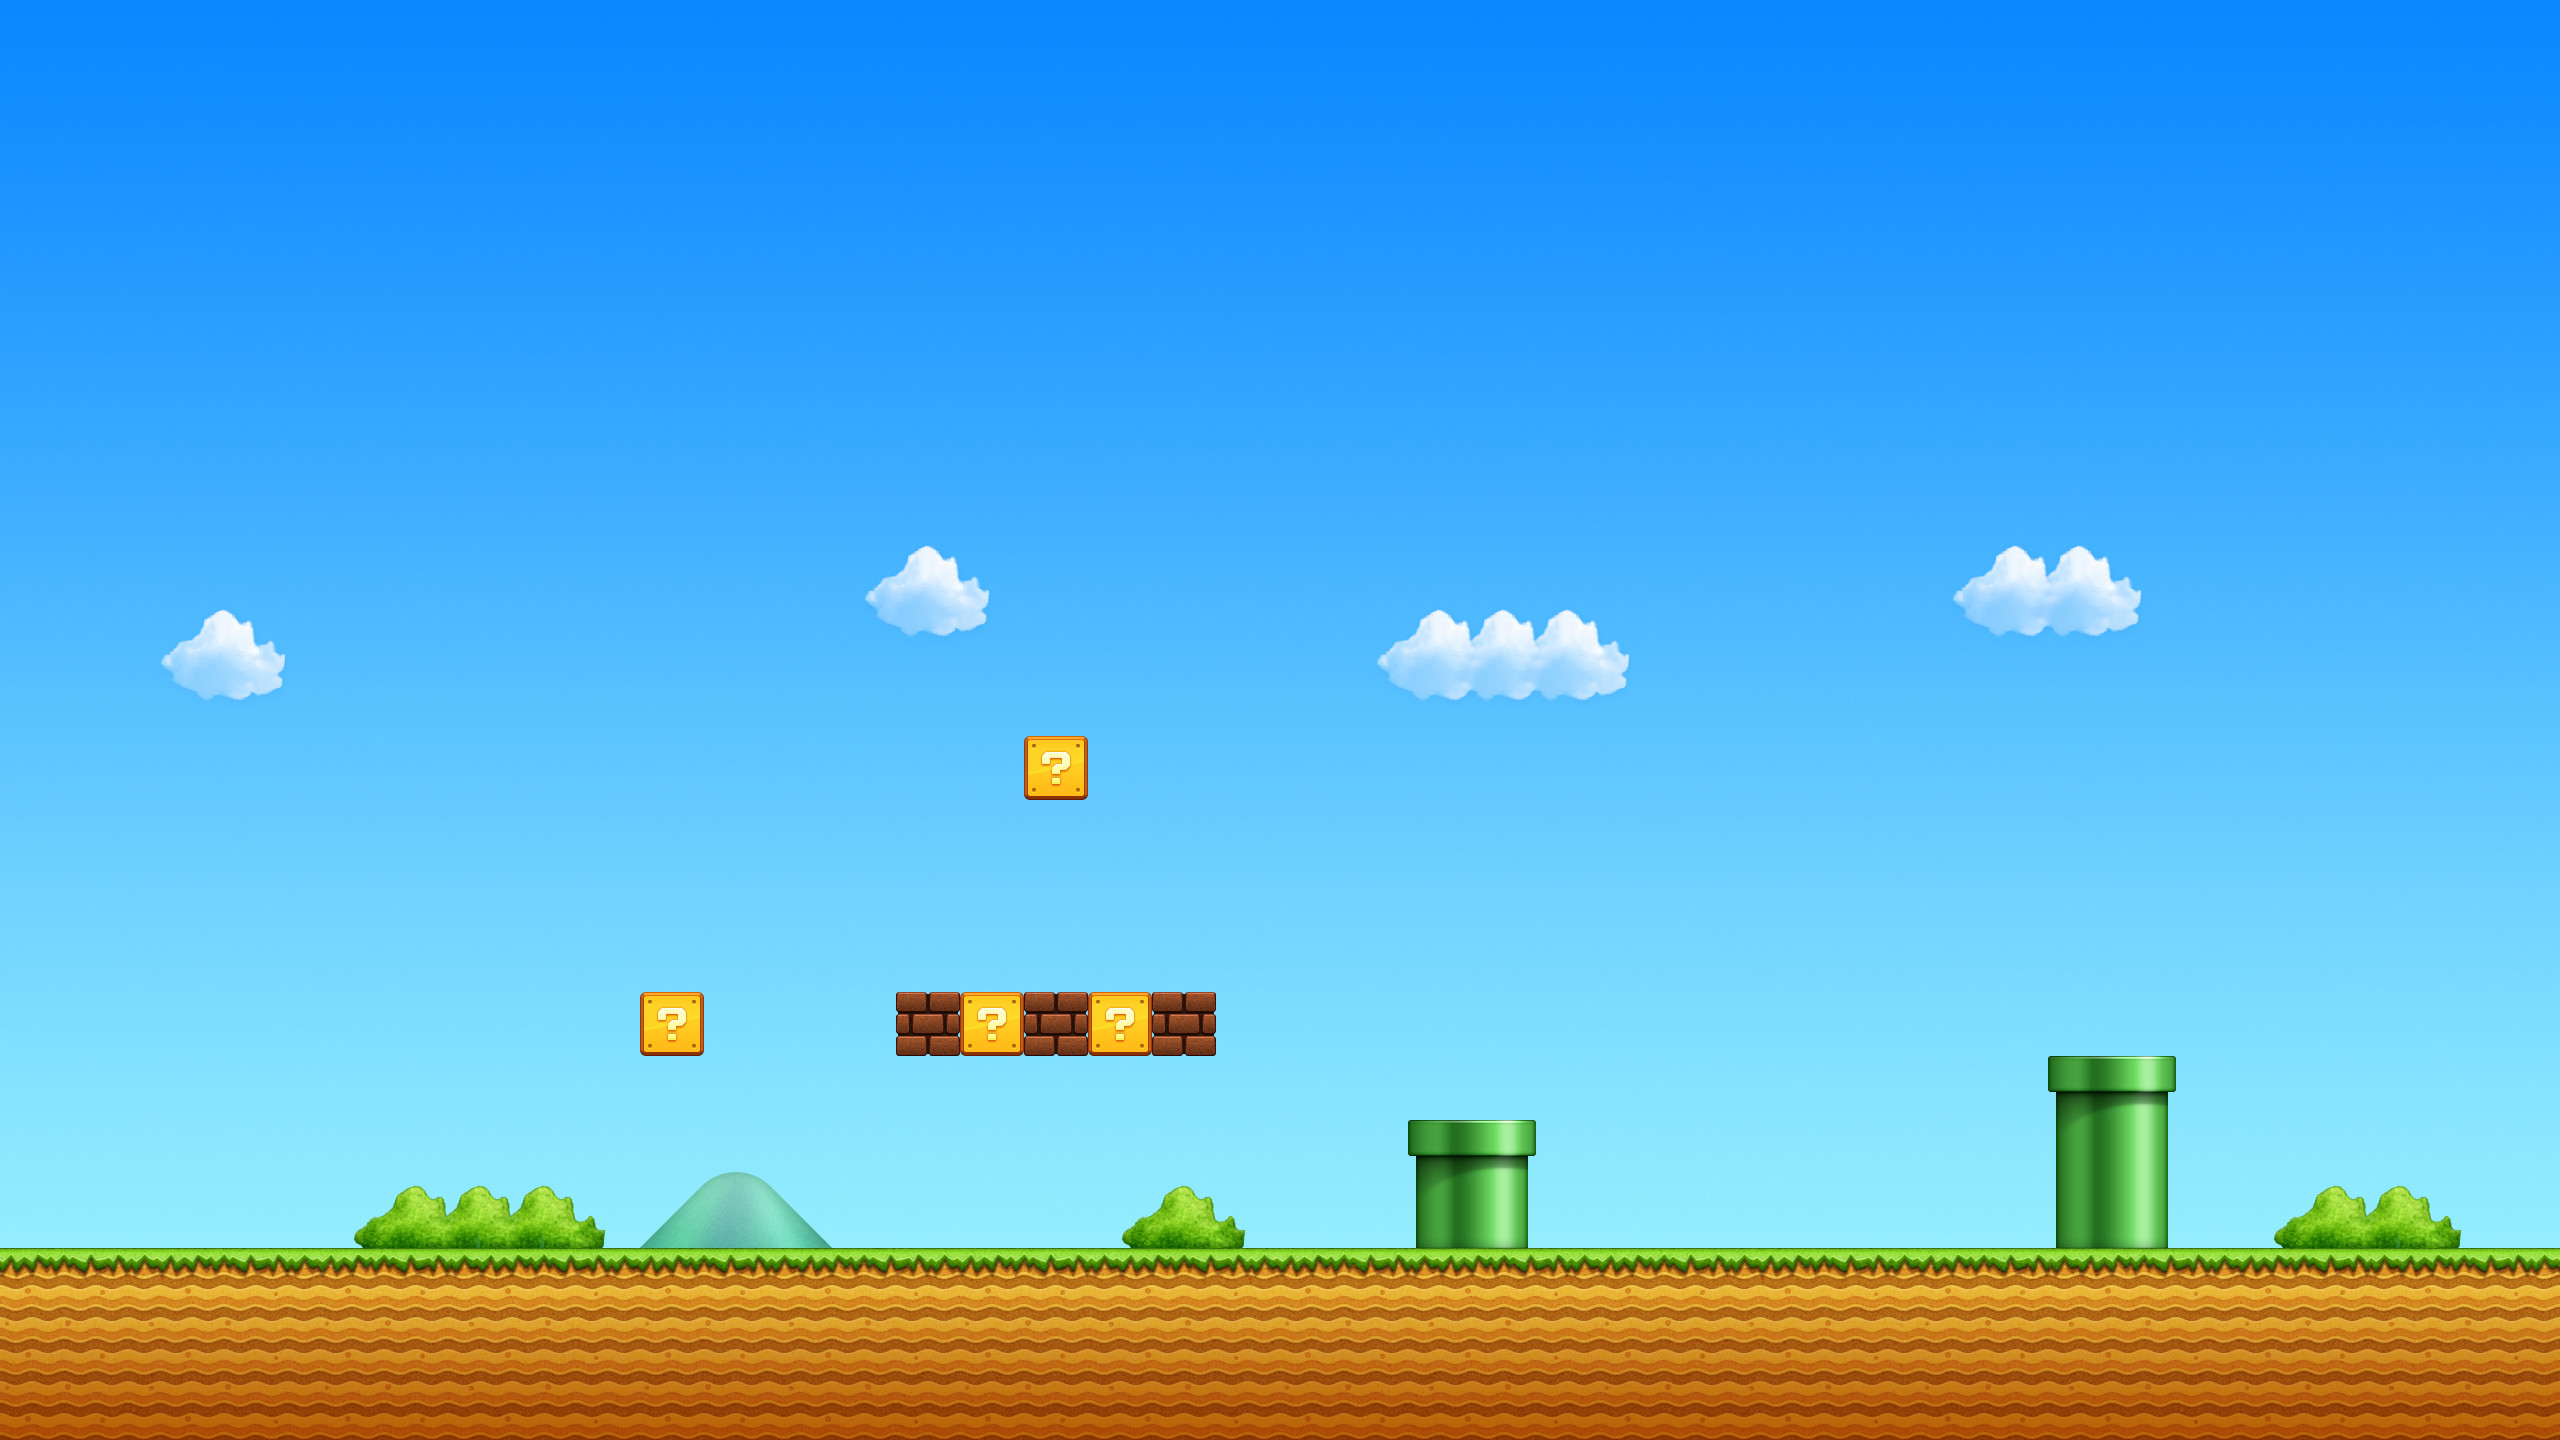 2560x1440 Retro Game Wallpapers For Android For Desktop Wallpaper 2560 x 1440 px 1.08  MB 50s classic